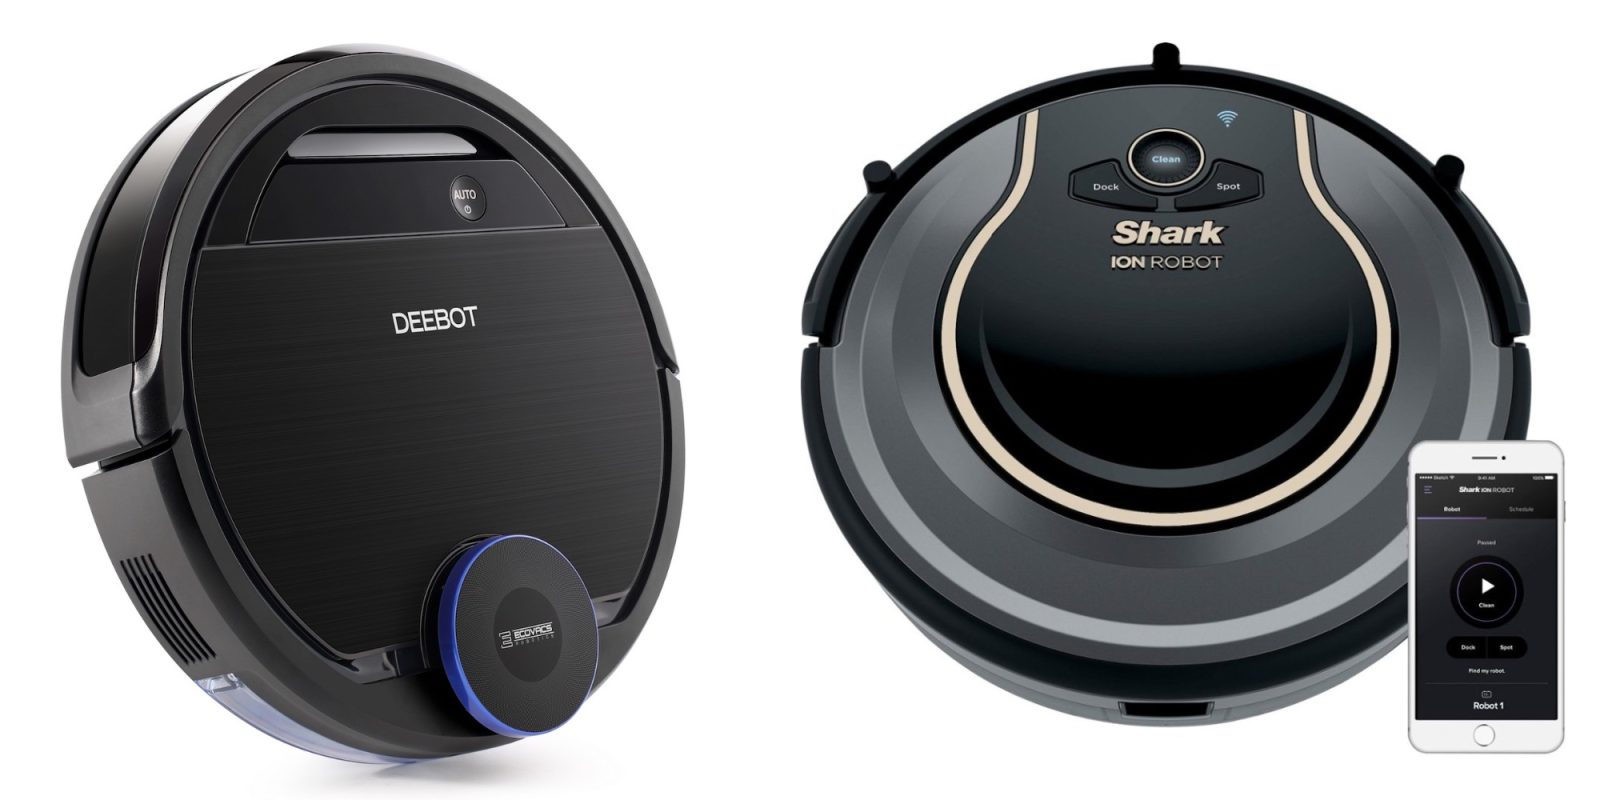 Let these smart robotic vacuums clean up the mess from $223 (Up to 40% off)